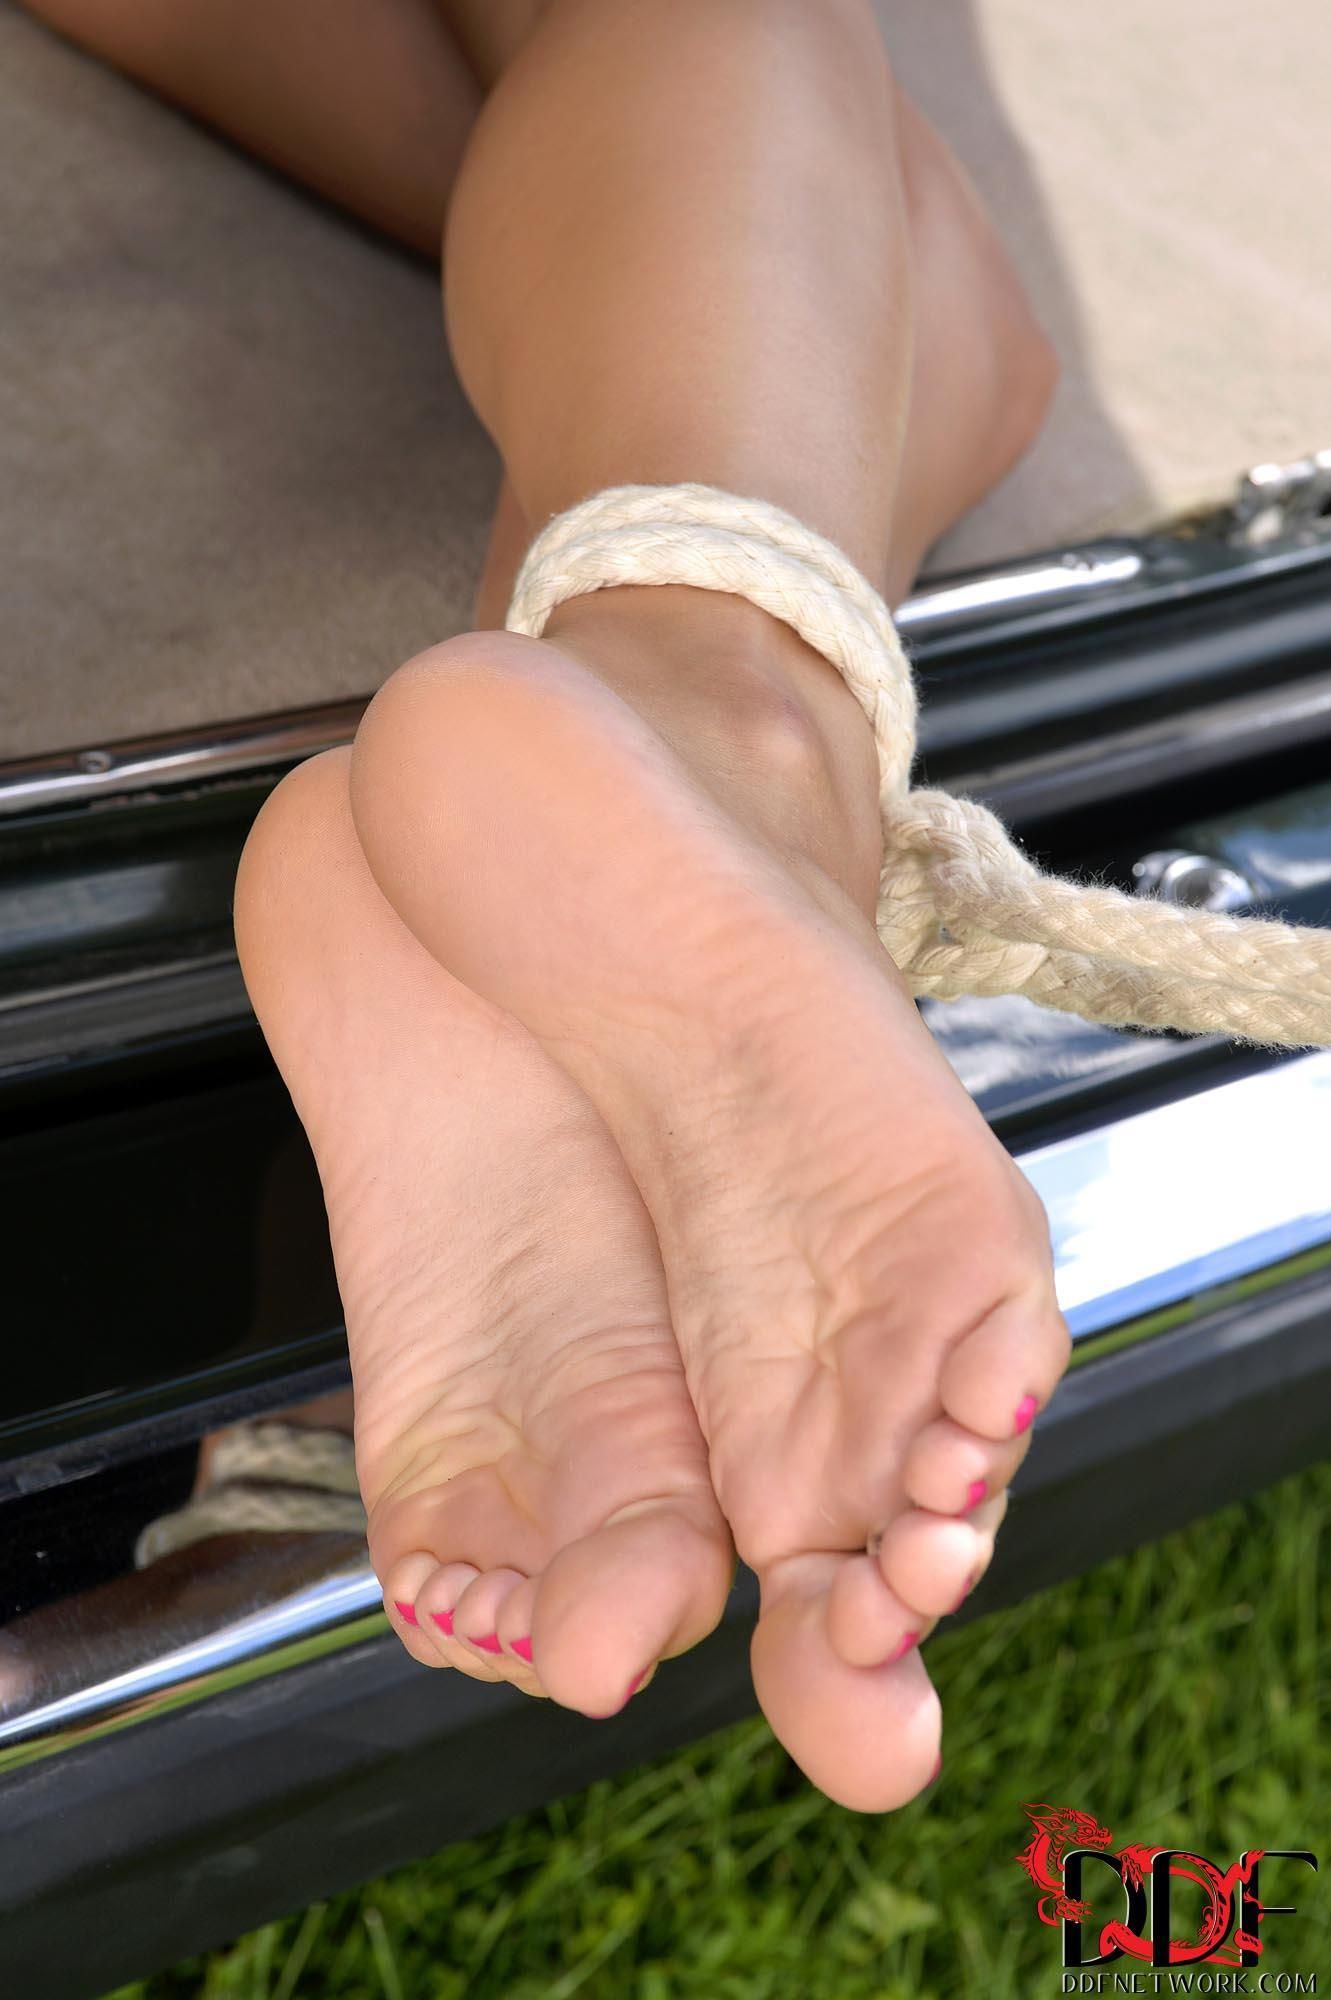 Tied Up Toes photo 10